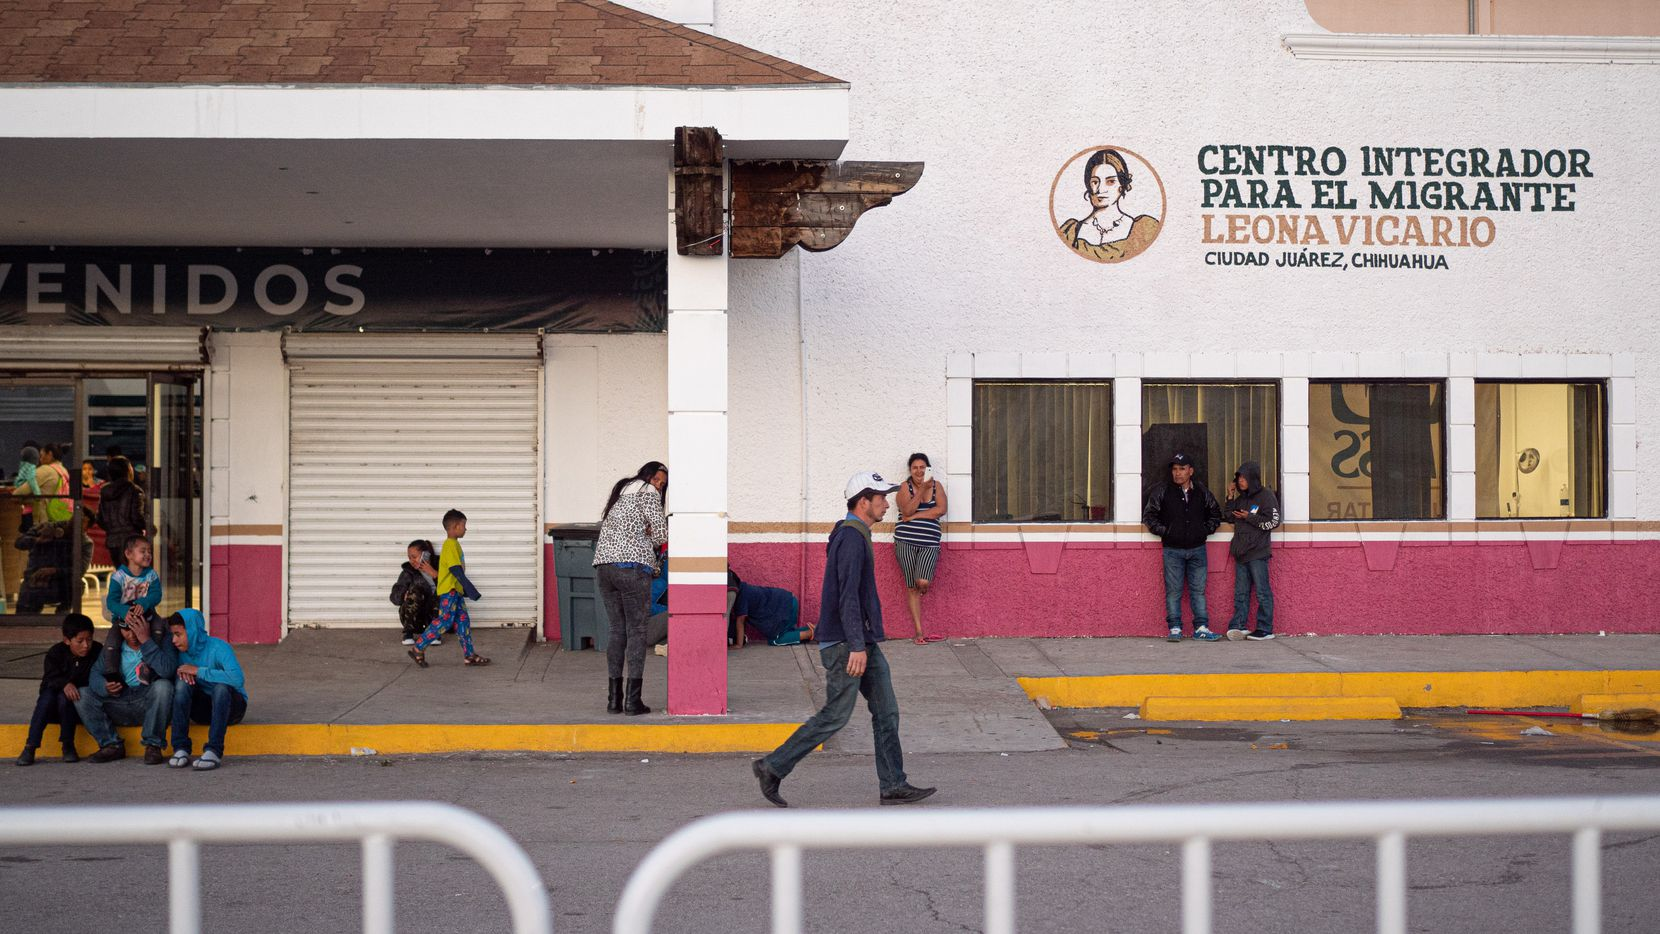 Migrants at the state run migrant shelter in Cd. Juarez, Chihuahua.